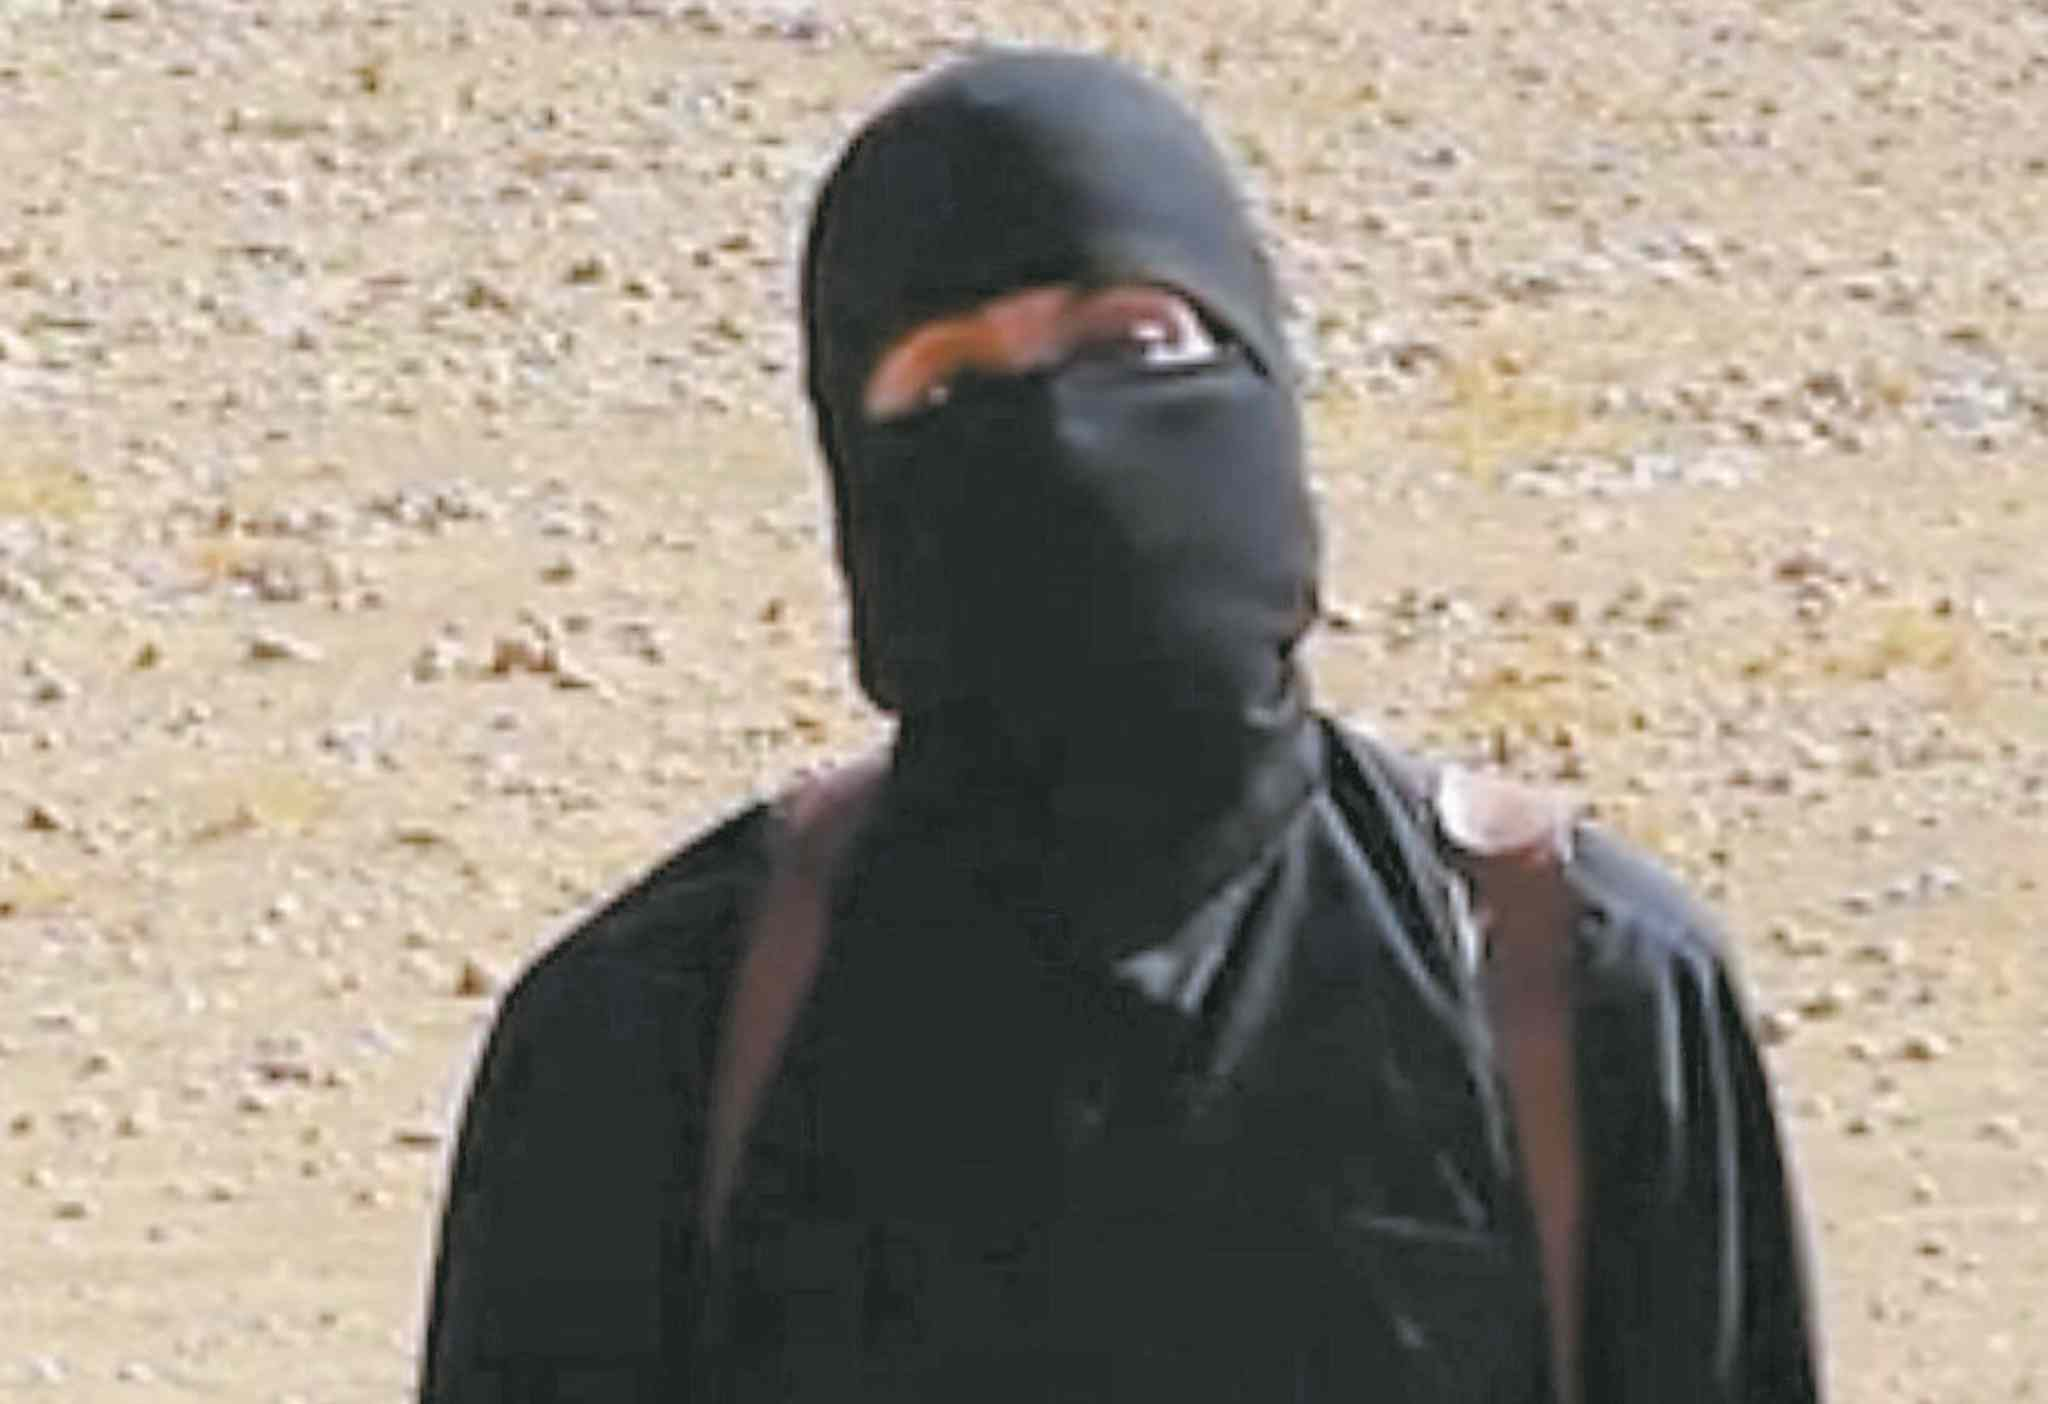 �Jihadi John� in an IS video.